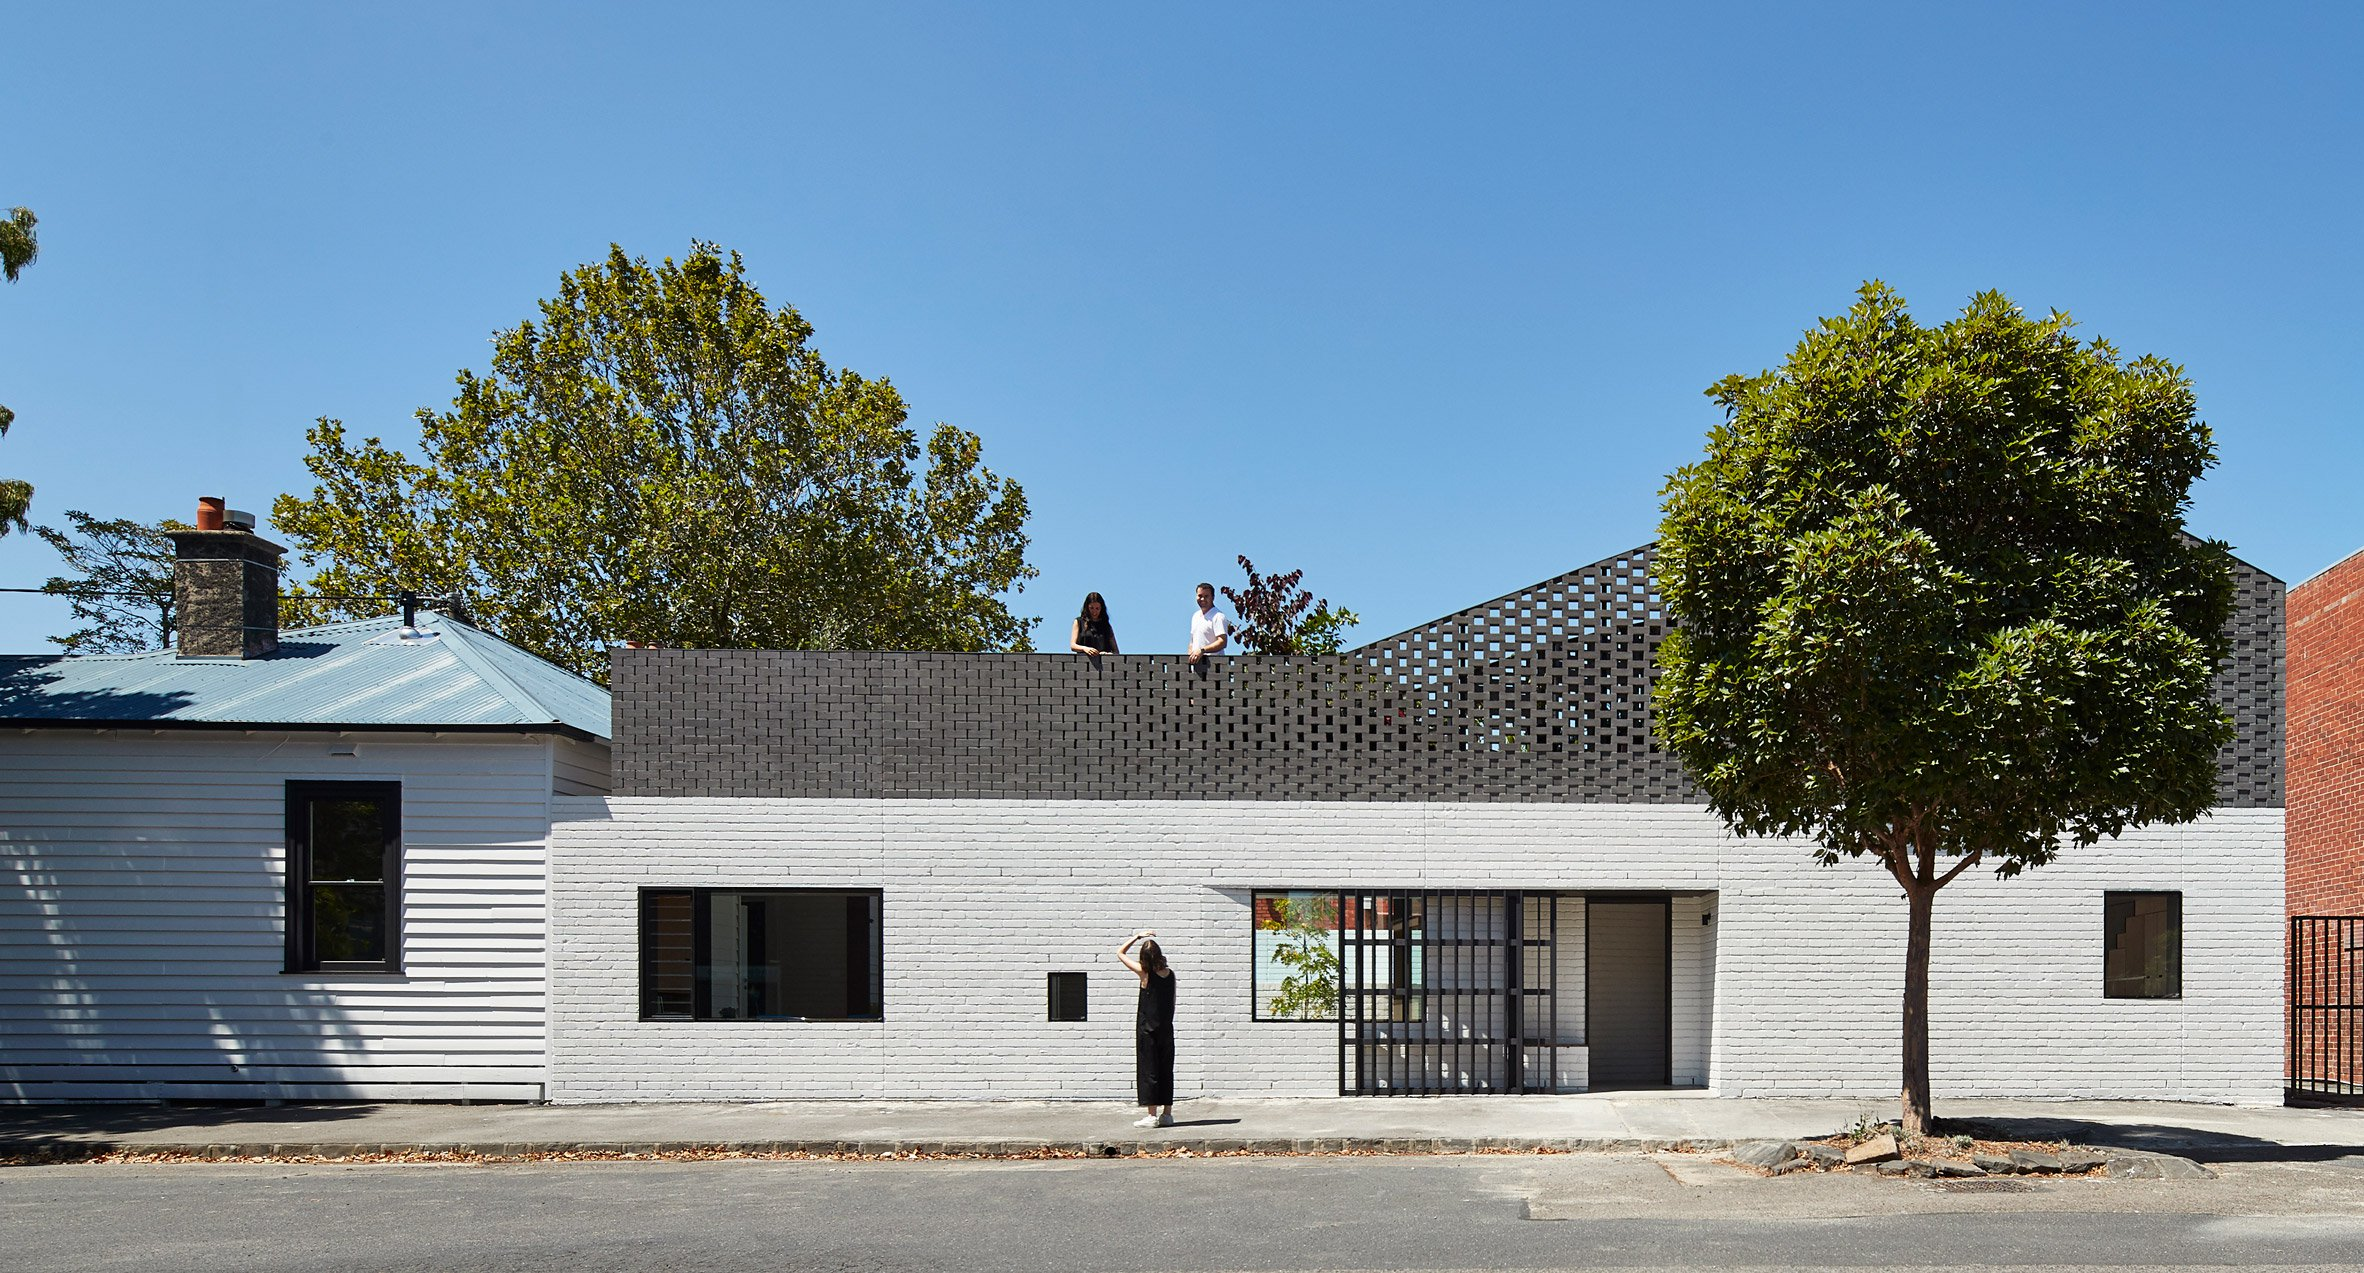 External shot of side of house made up of a small wooden cottage and a long brick extension with a lower half painted white brick and the top floor clad in black-painted brick with a screen that peaks on the far end.